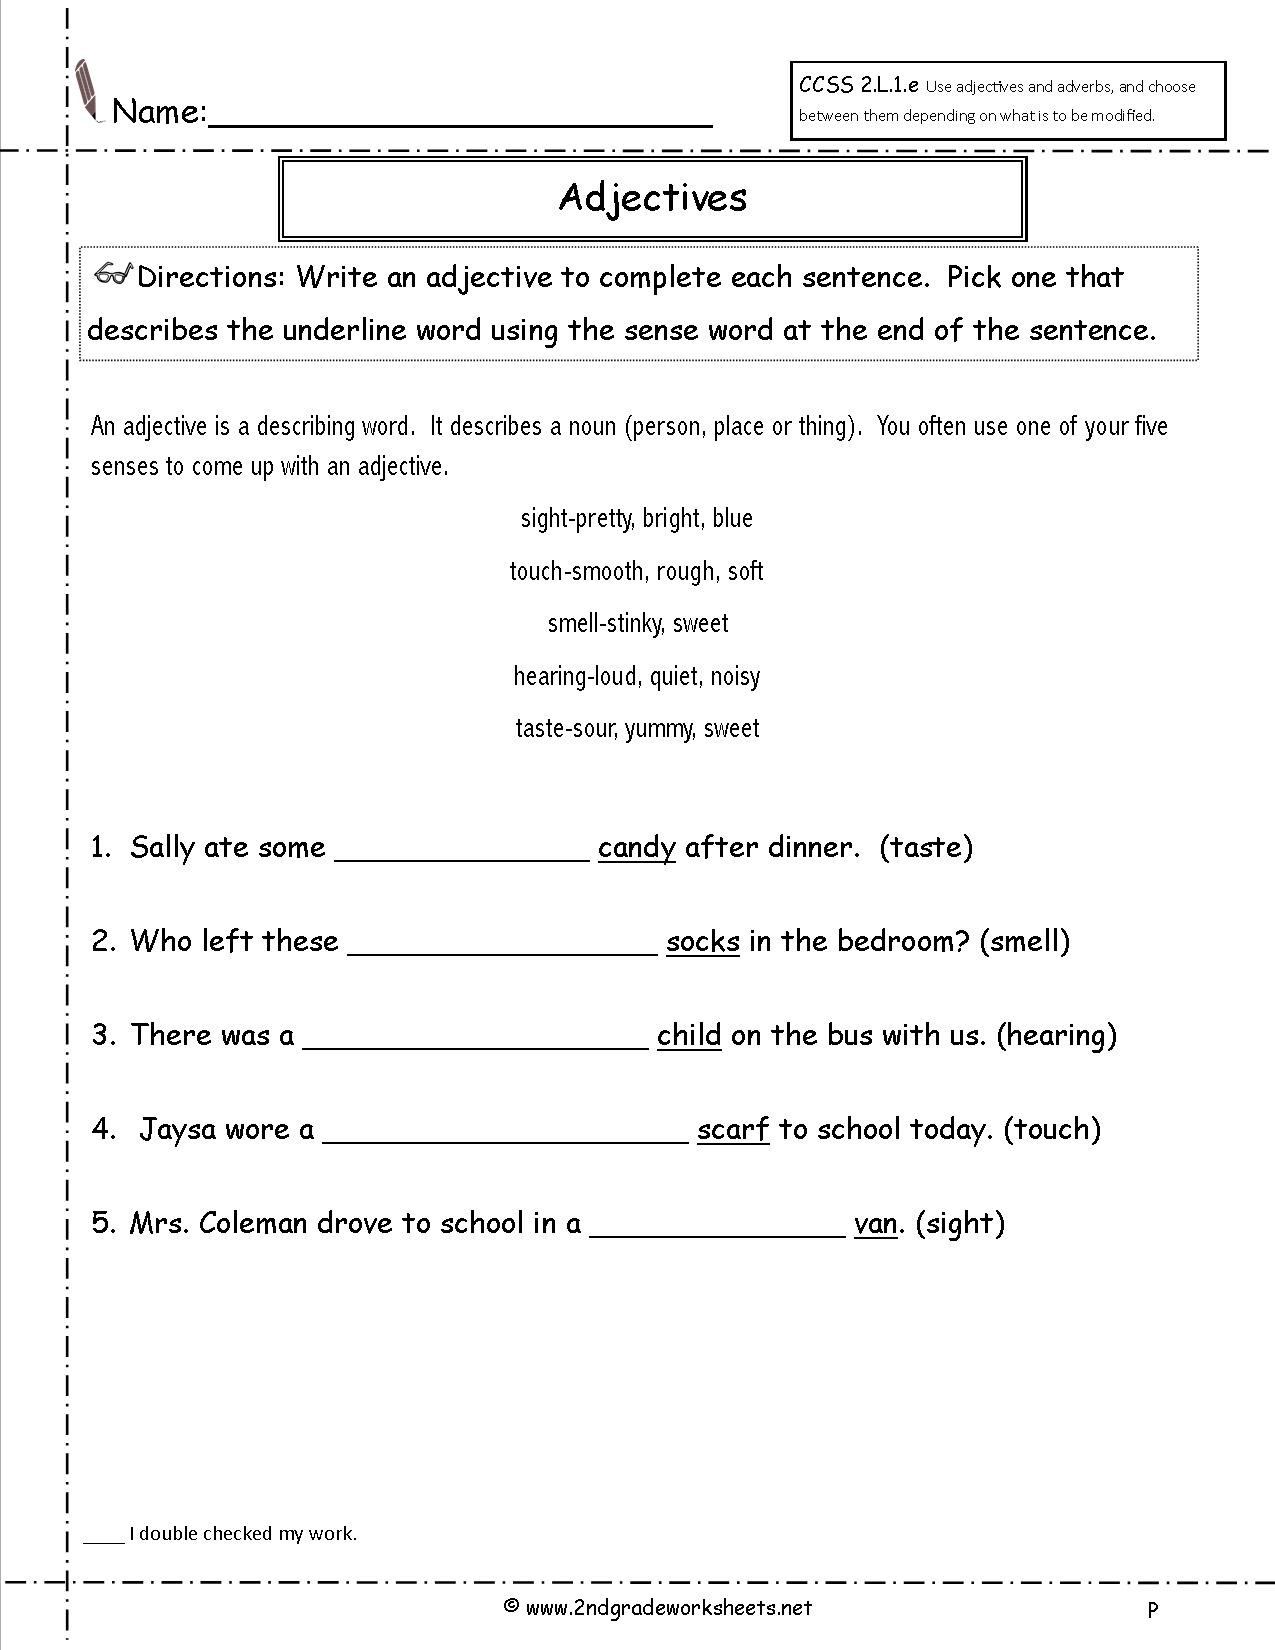 Adjective Worksheets 2nd Grade Binary Math Worksheet Pronoun Worksheets for Grade 2 Free